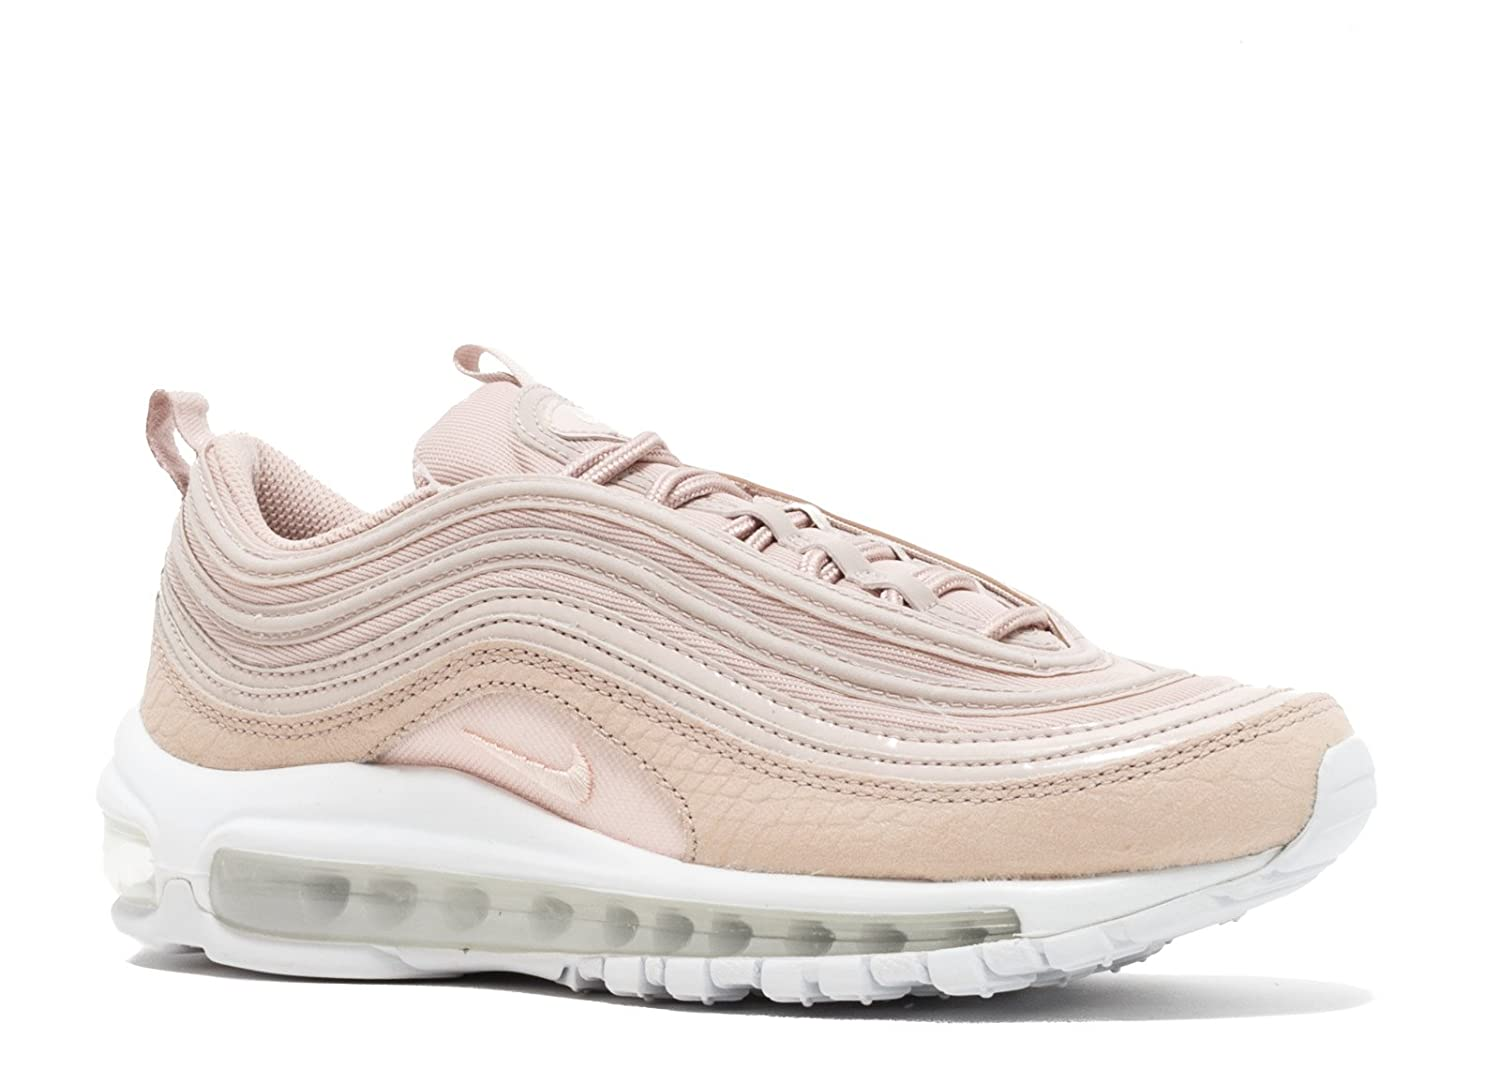 the best attitude e95a3 968e5 Nike women's Air Max 97 premium running shoes, Rosa (Siltstone Red/White/Black):  Amazon.co.uk: Sports & Outdoors